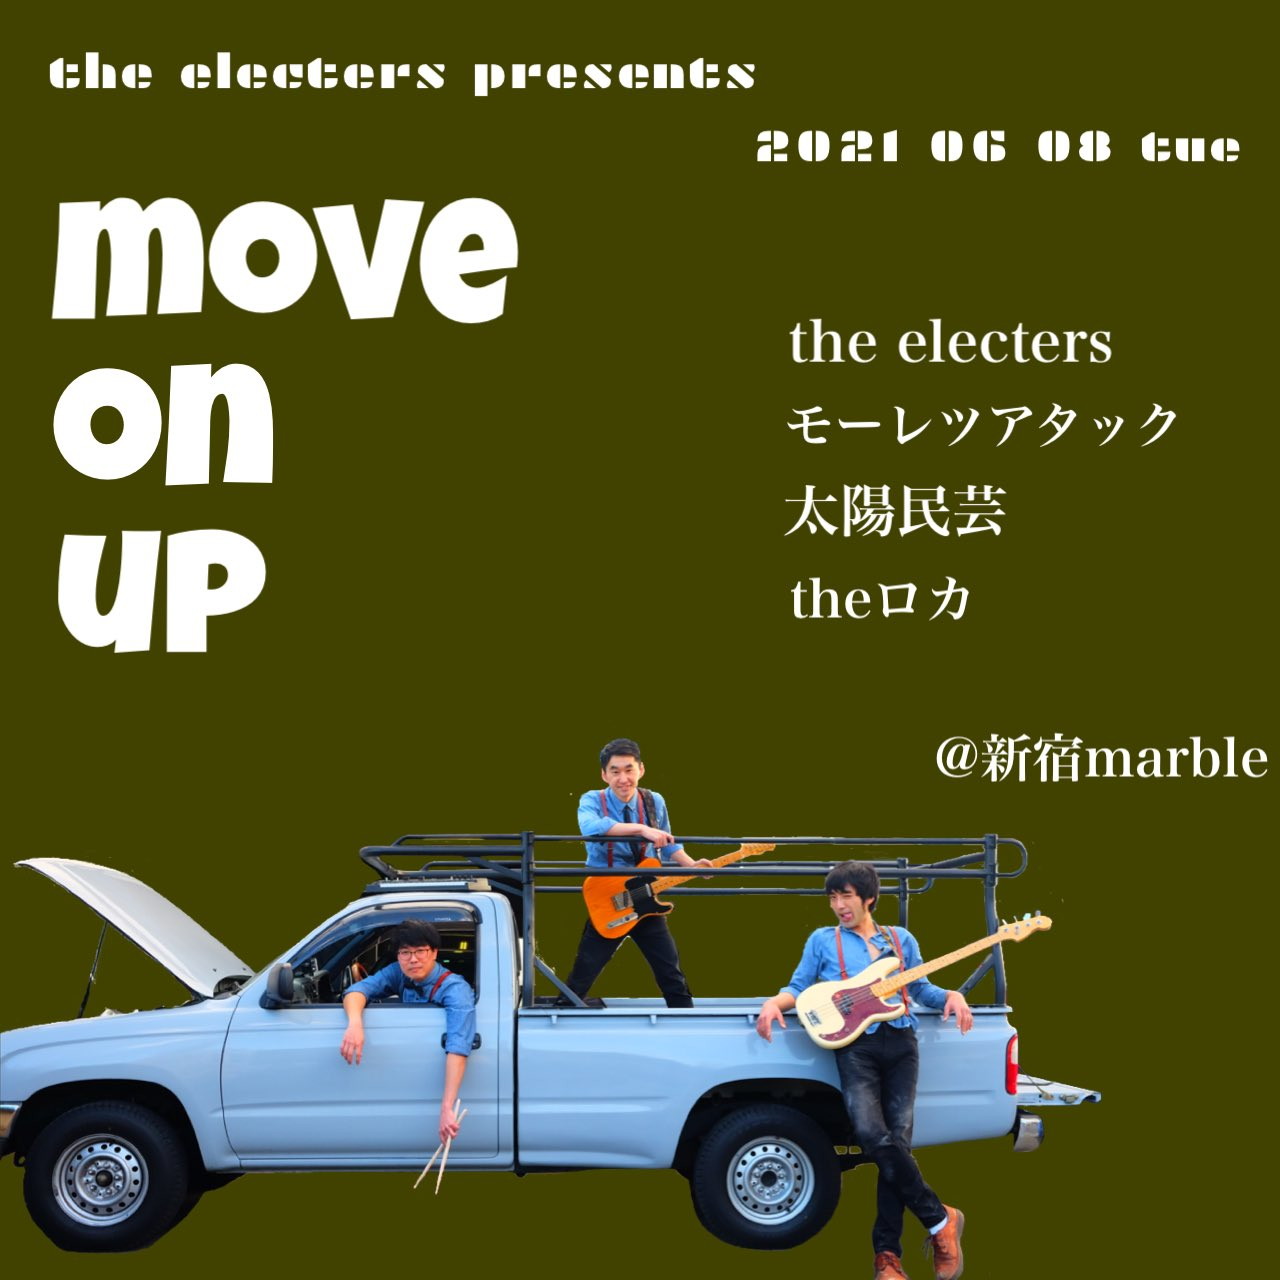 the electers pre.「move on up」